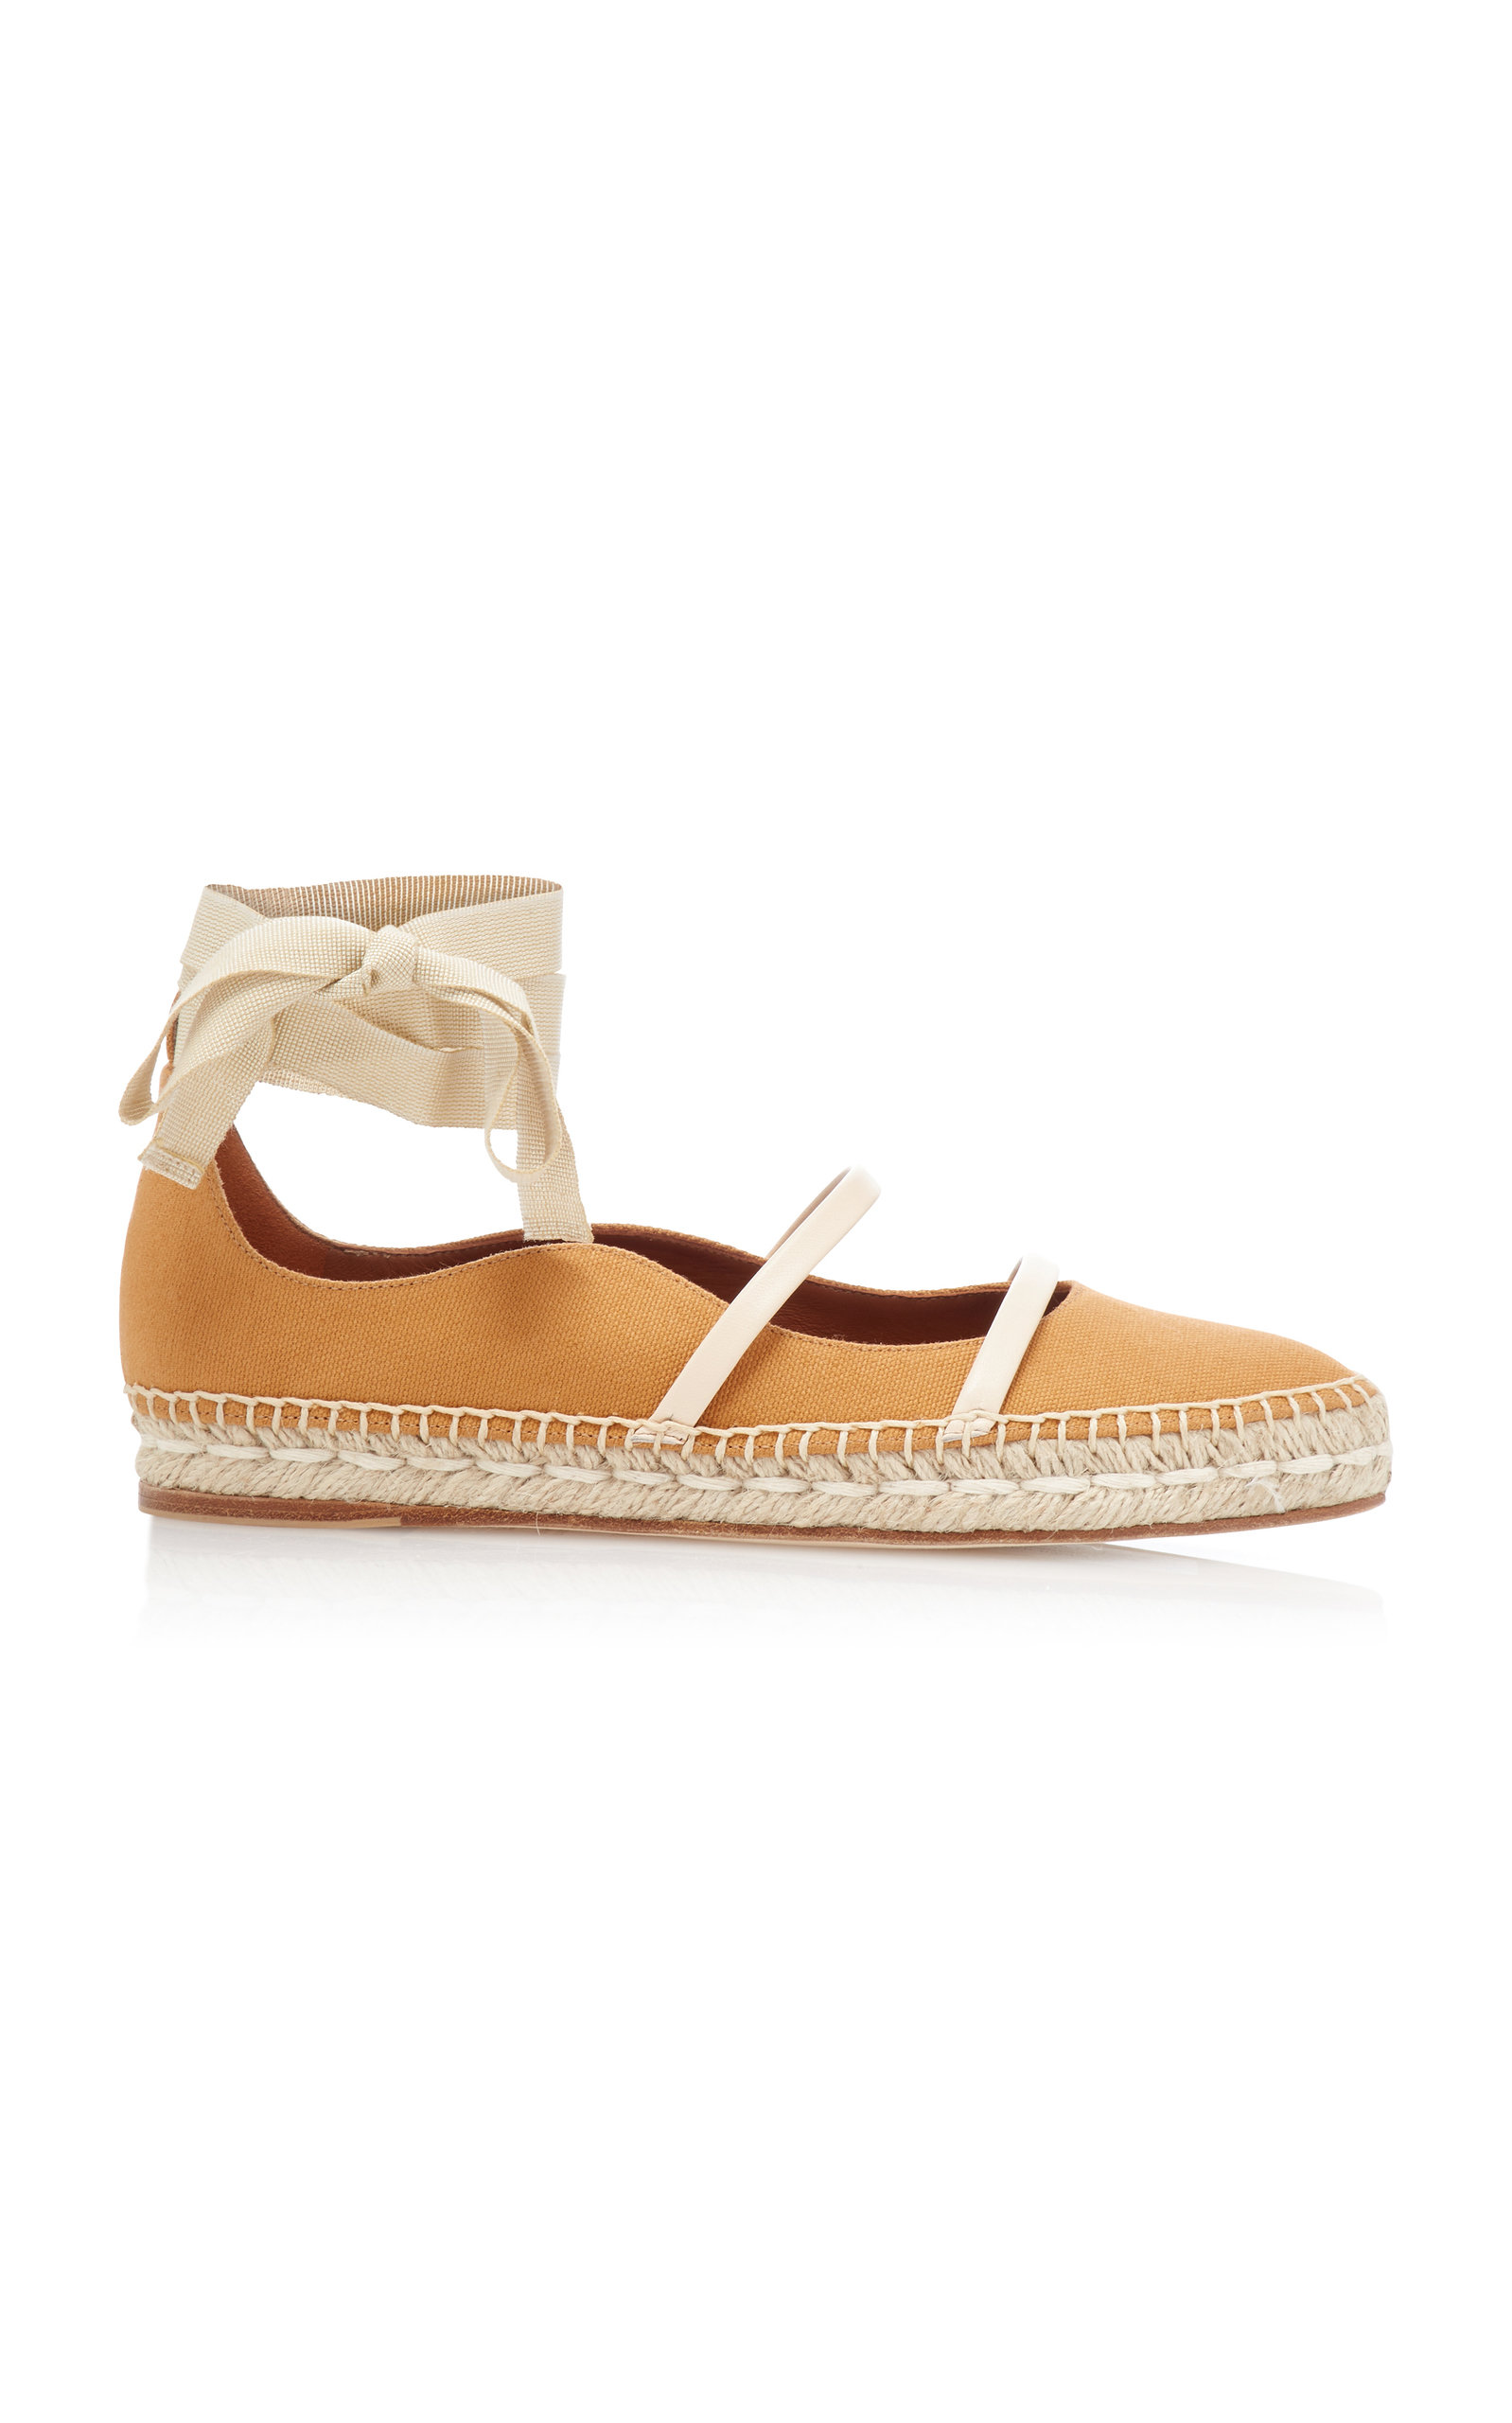 MALONE SOULIERS | Malone Souliers Selina Espadrille Canvas Flats | Goxip